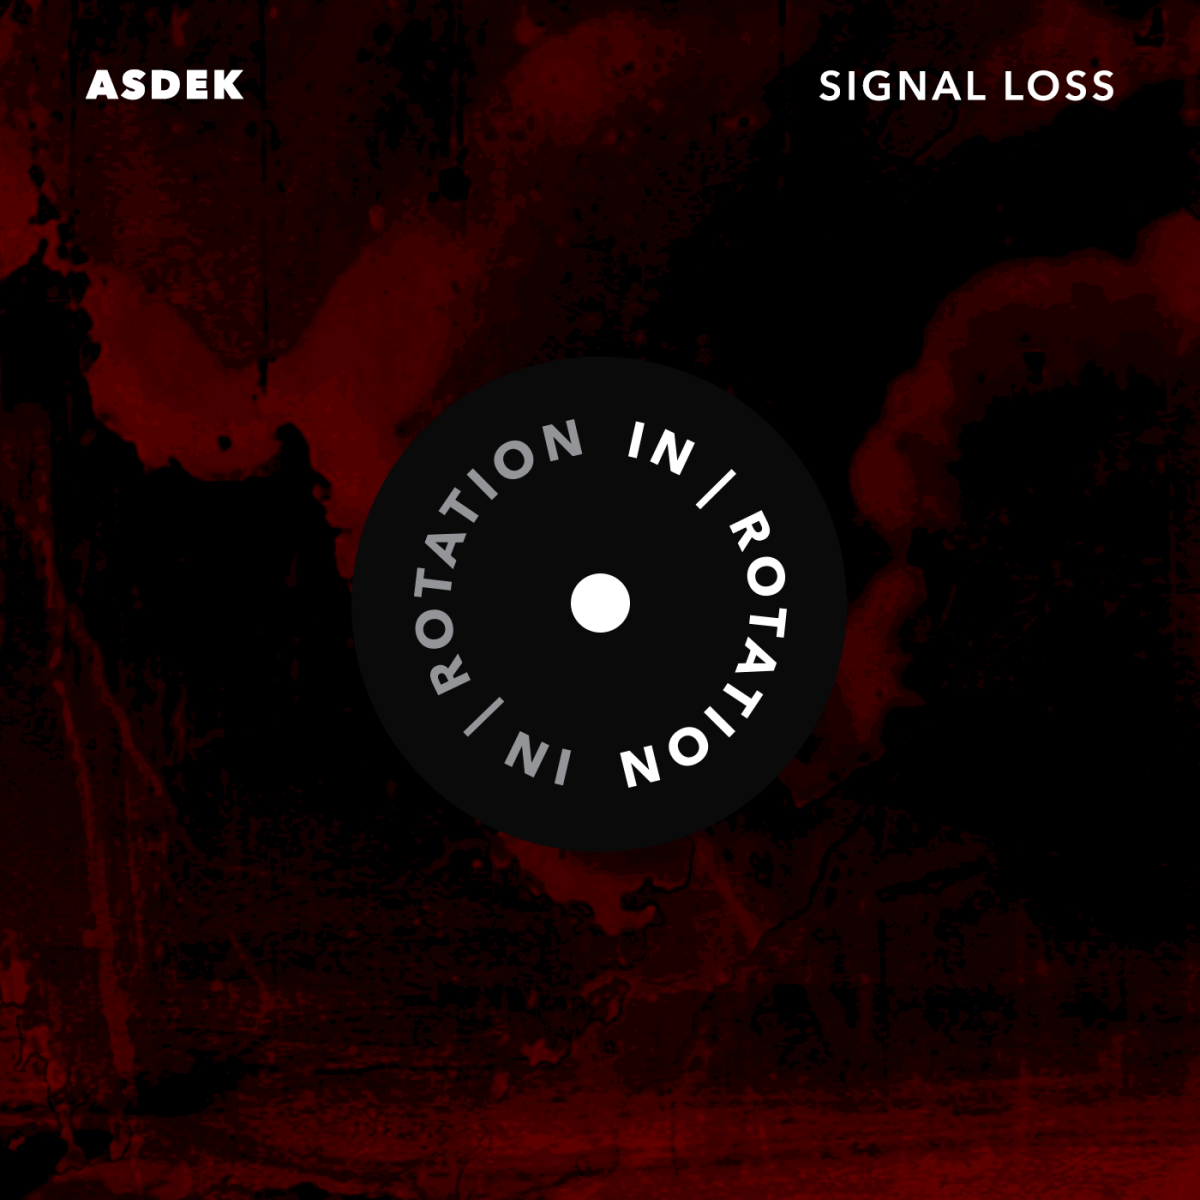 insomniac_records_in_rotation_2017_an_signal_loss_asdek_general_asset_1400x1400_r01